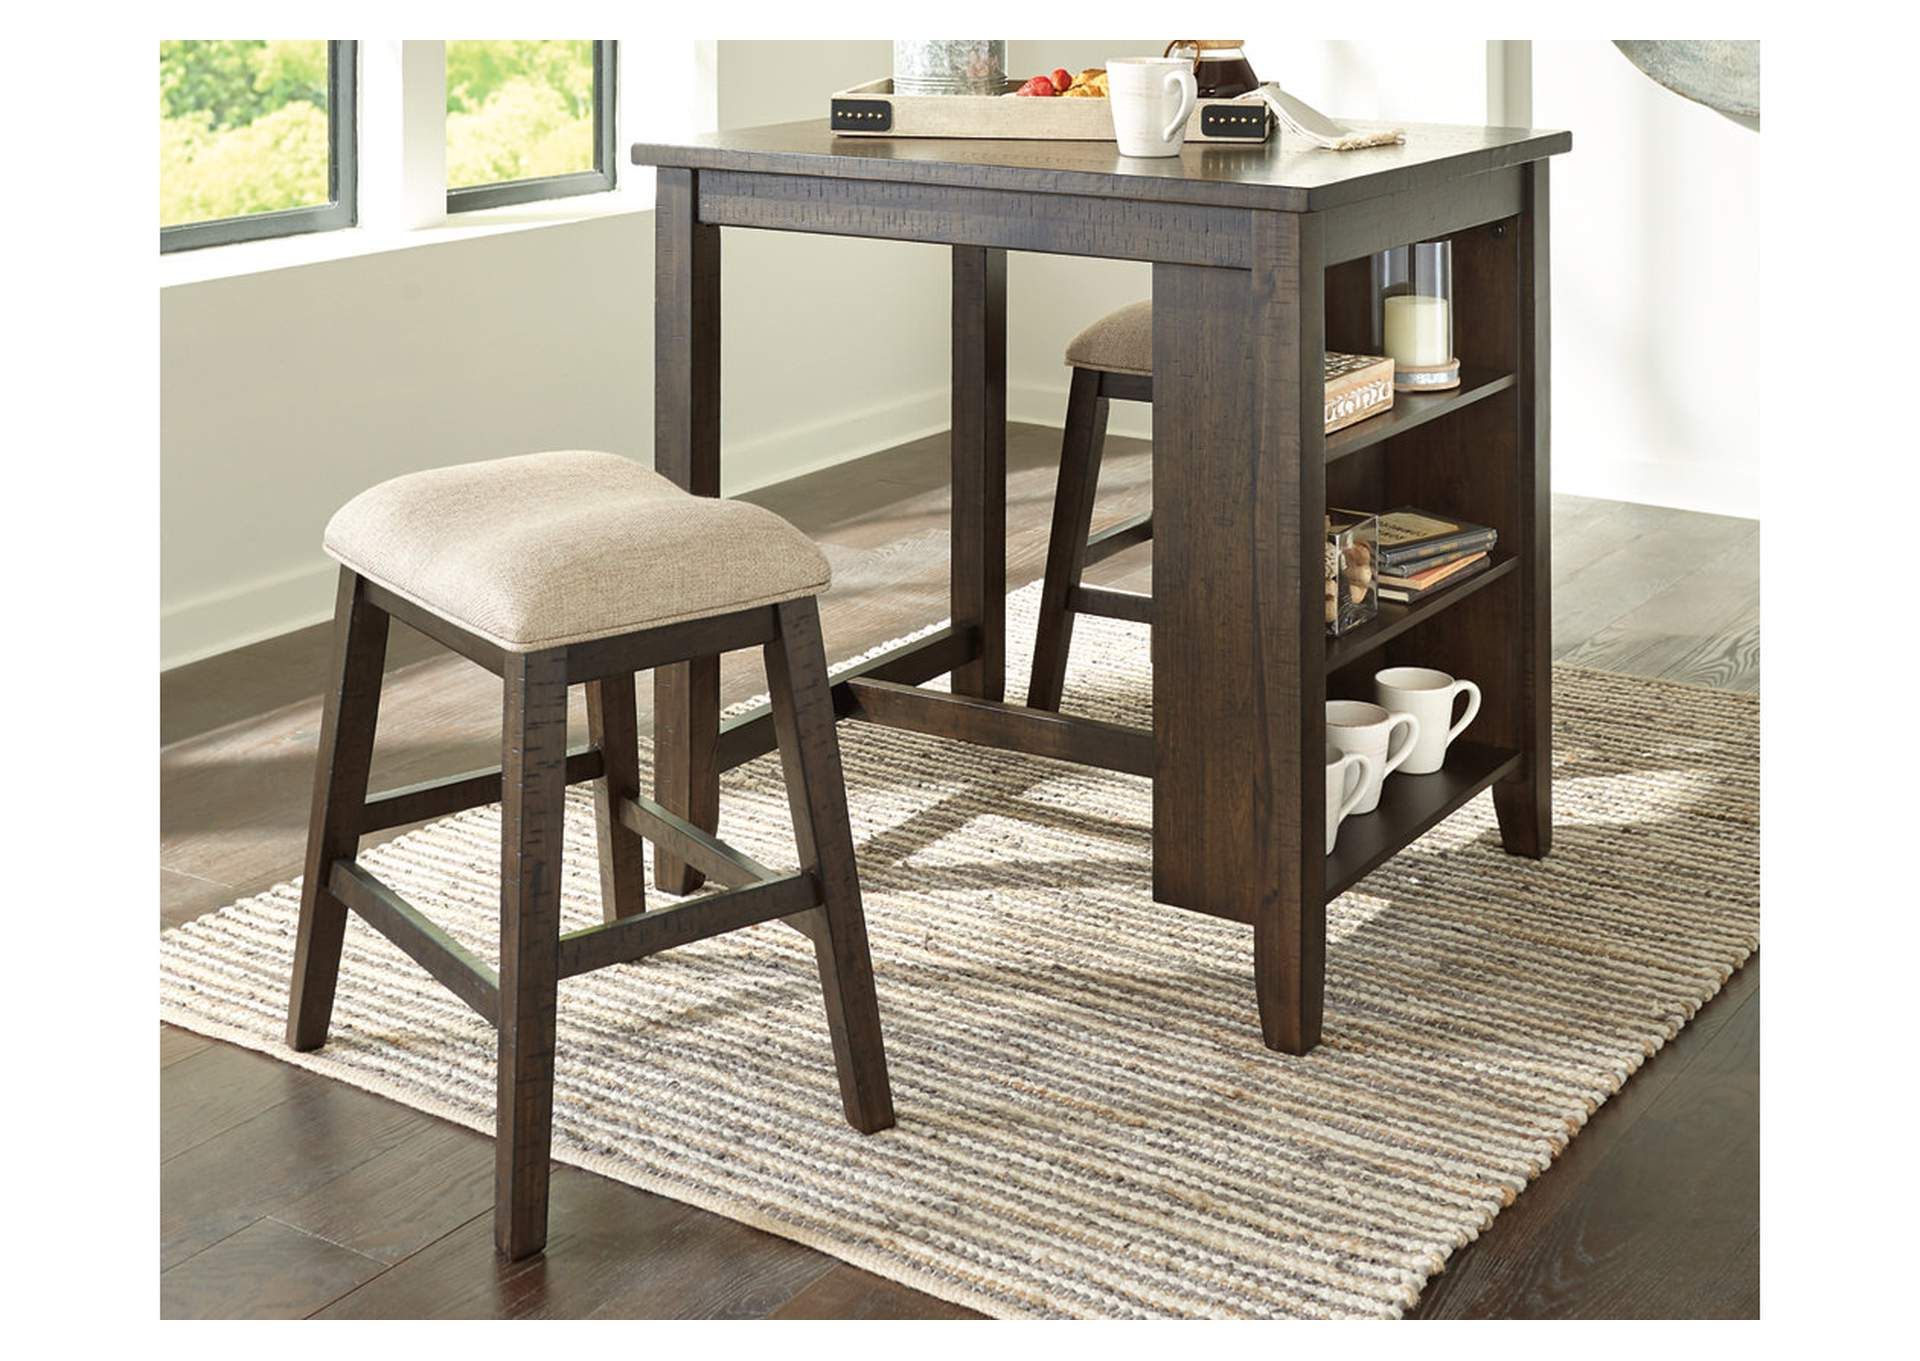 Rokane Light Brown Counter Height Dining Room Table and Bar Stools (Set of 3),Signature Design By Ashley